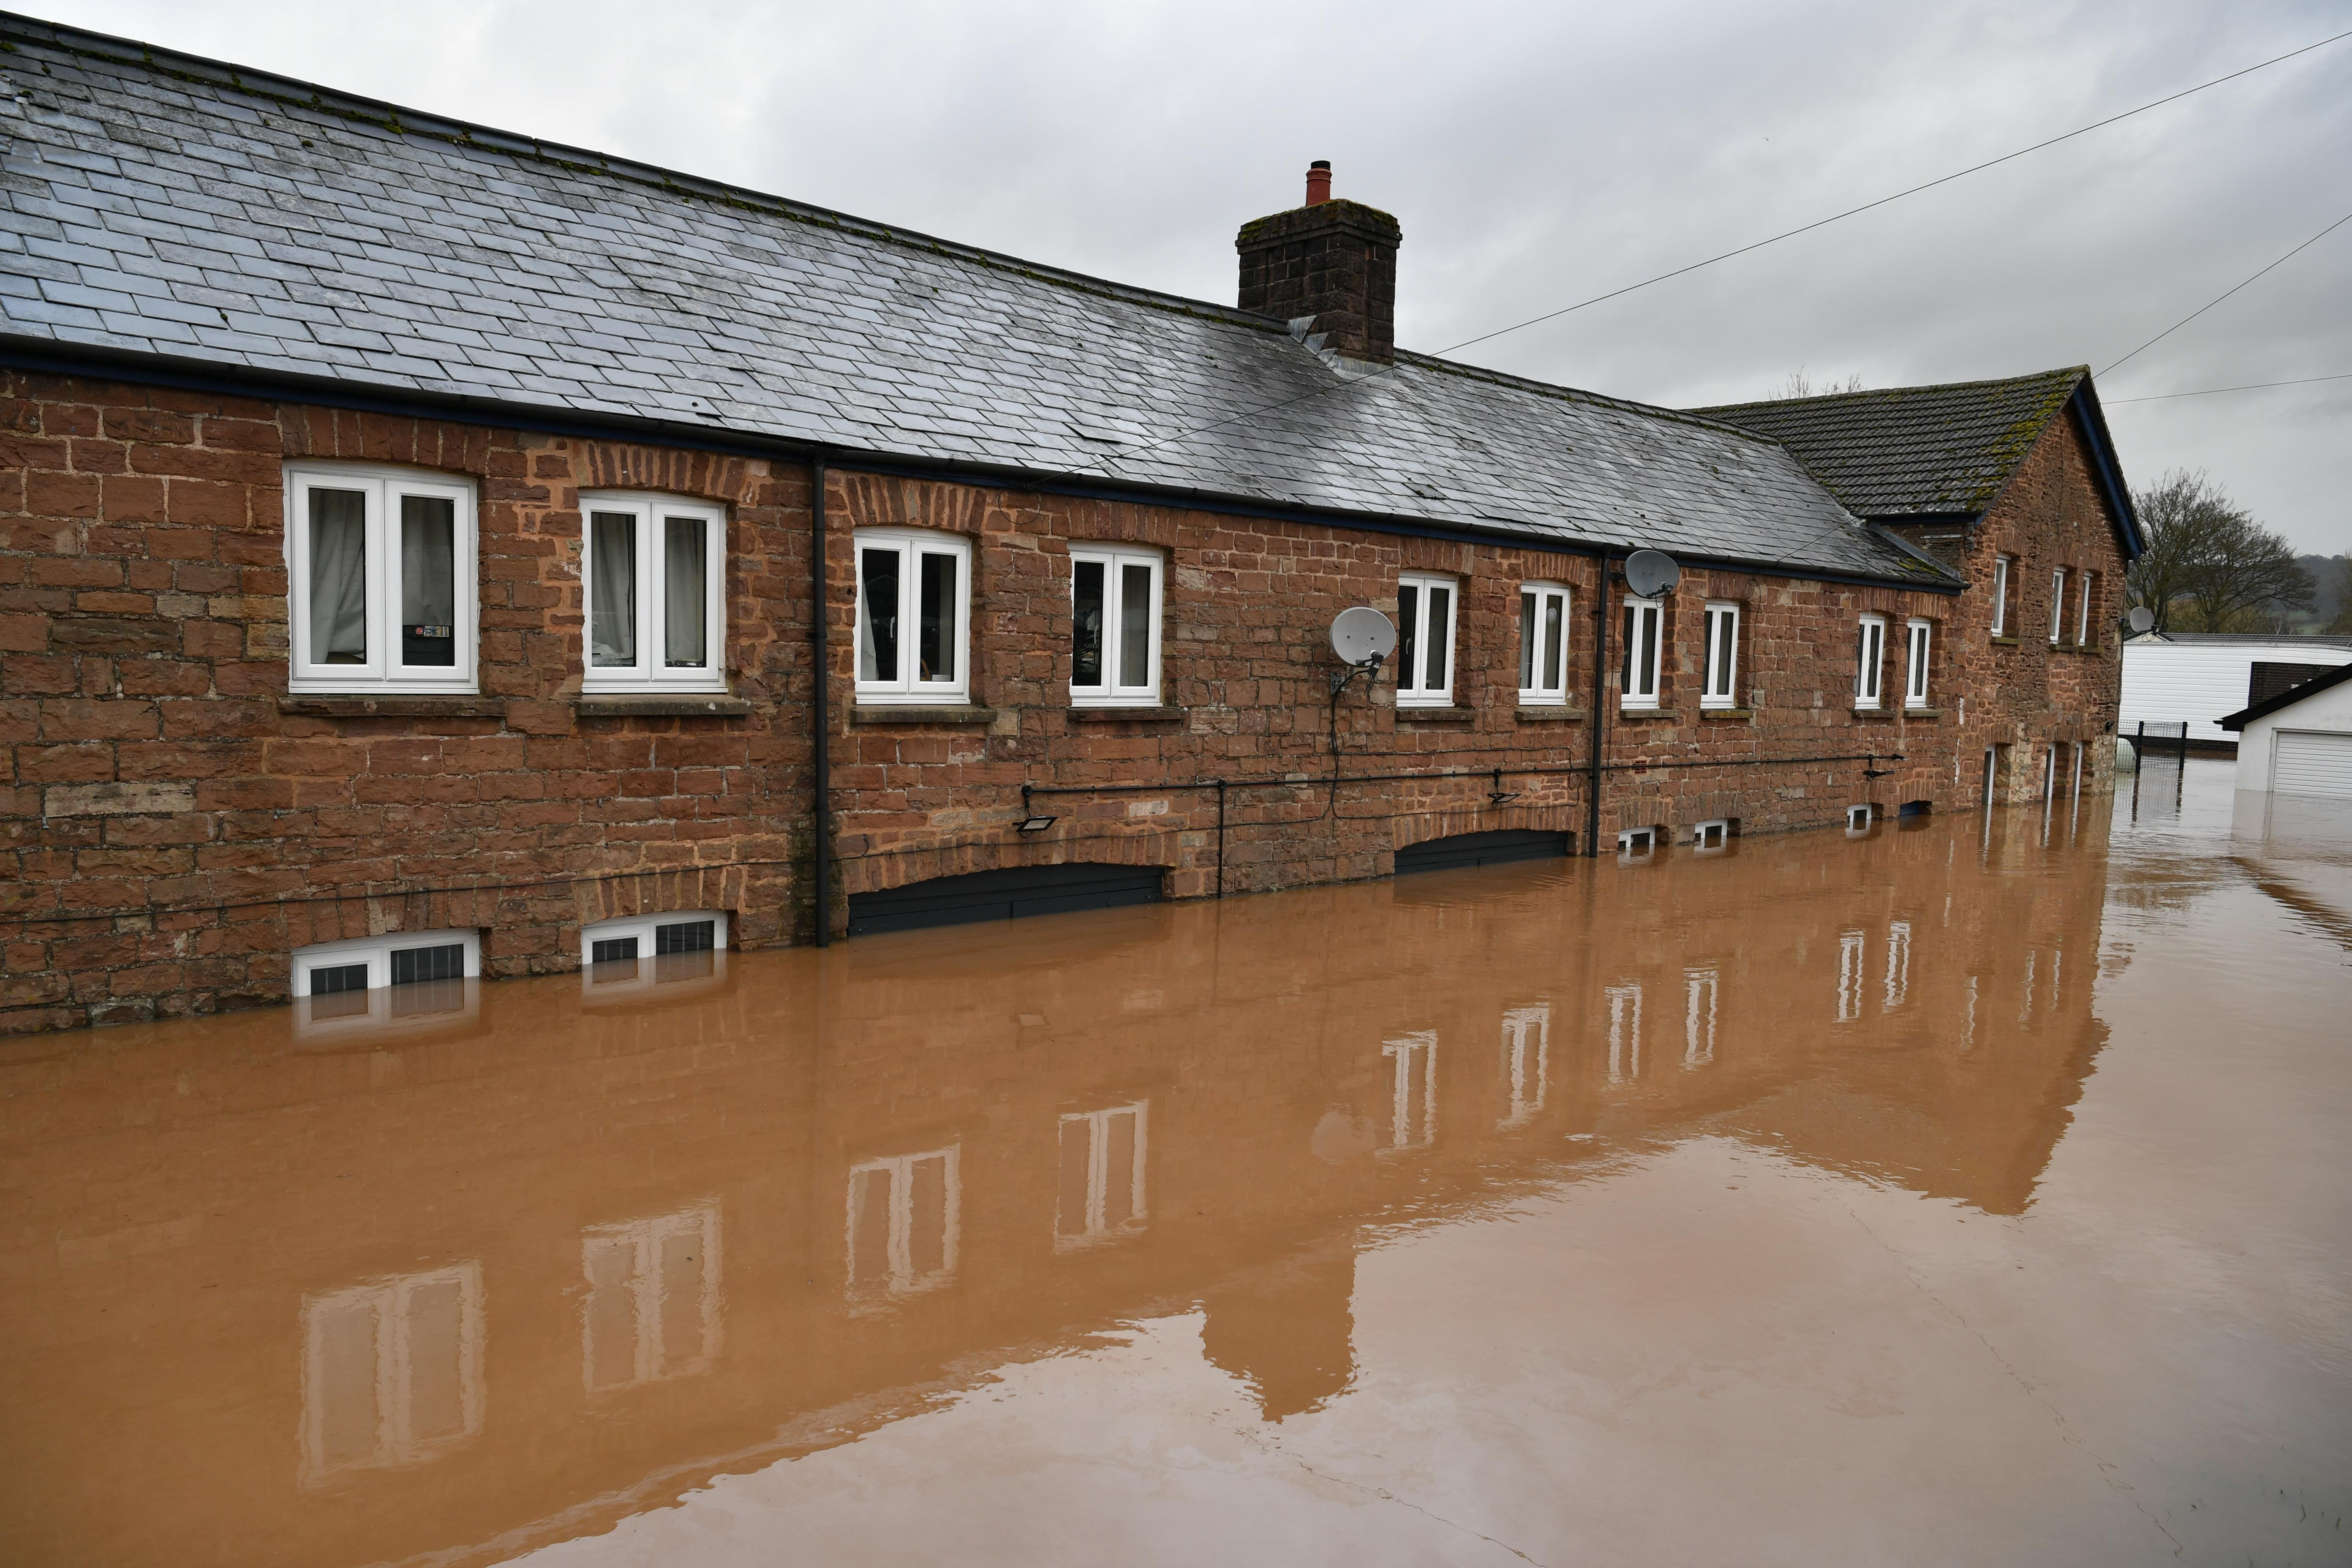 Flooded cottages in Monmouth, in the aftermath of Storm Dennis. (Photo by Ben Birchall/PA Images via Getty Images)